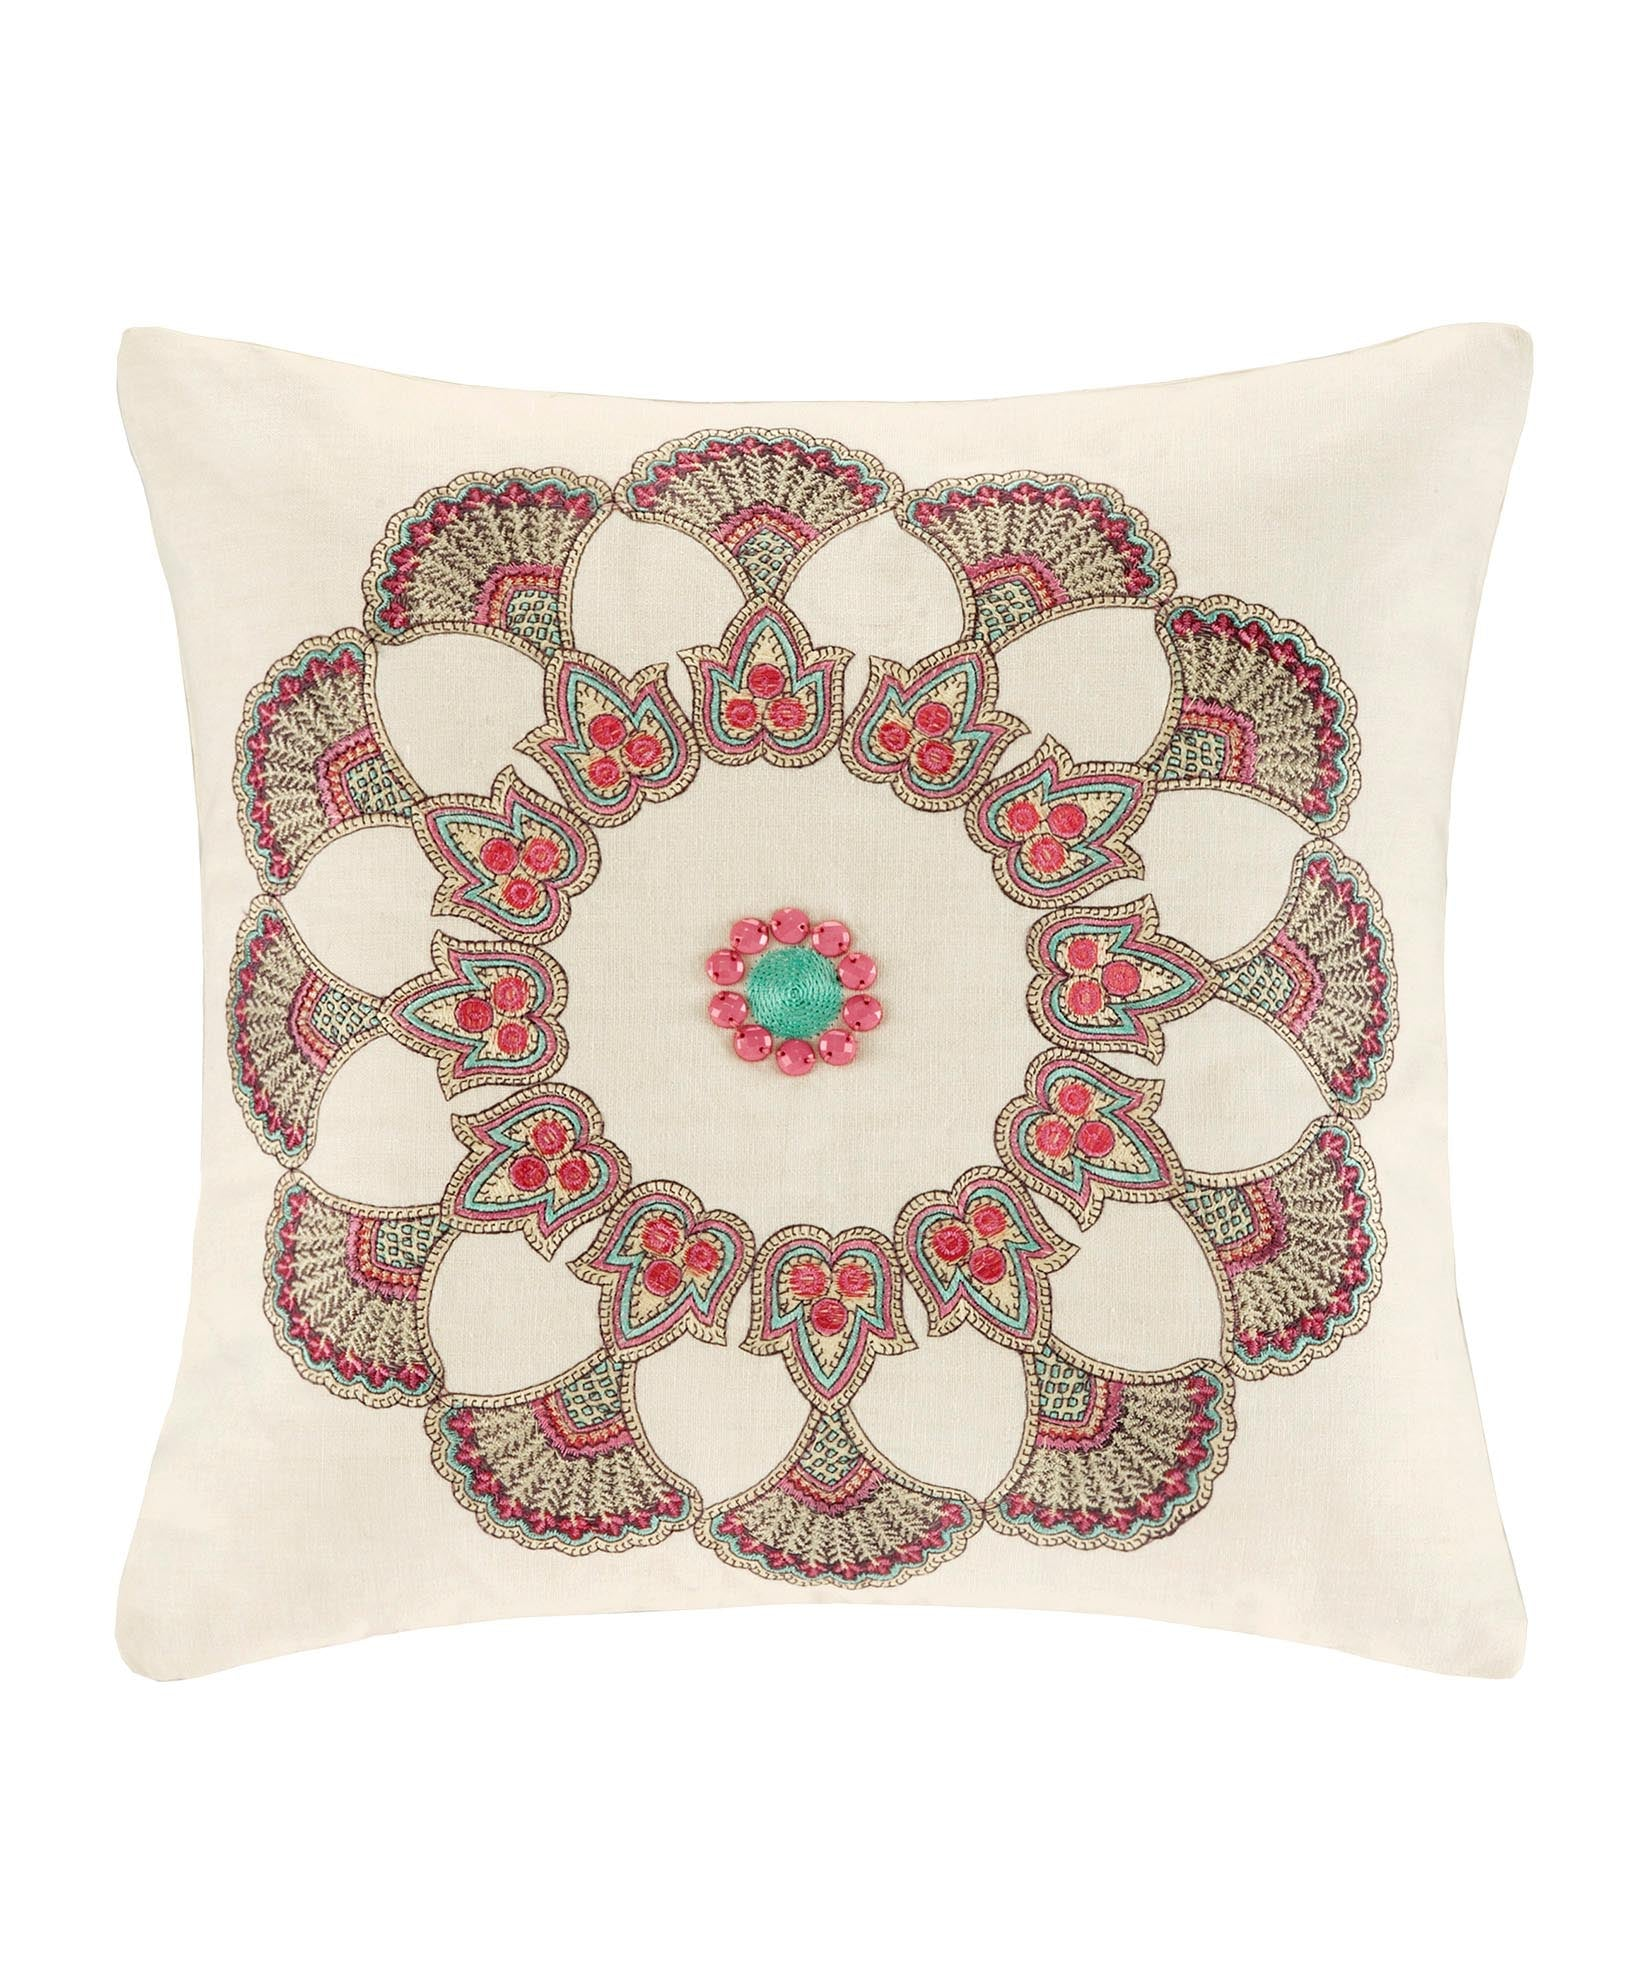 French Vanilla - Guinevere Square Pillow